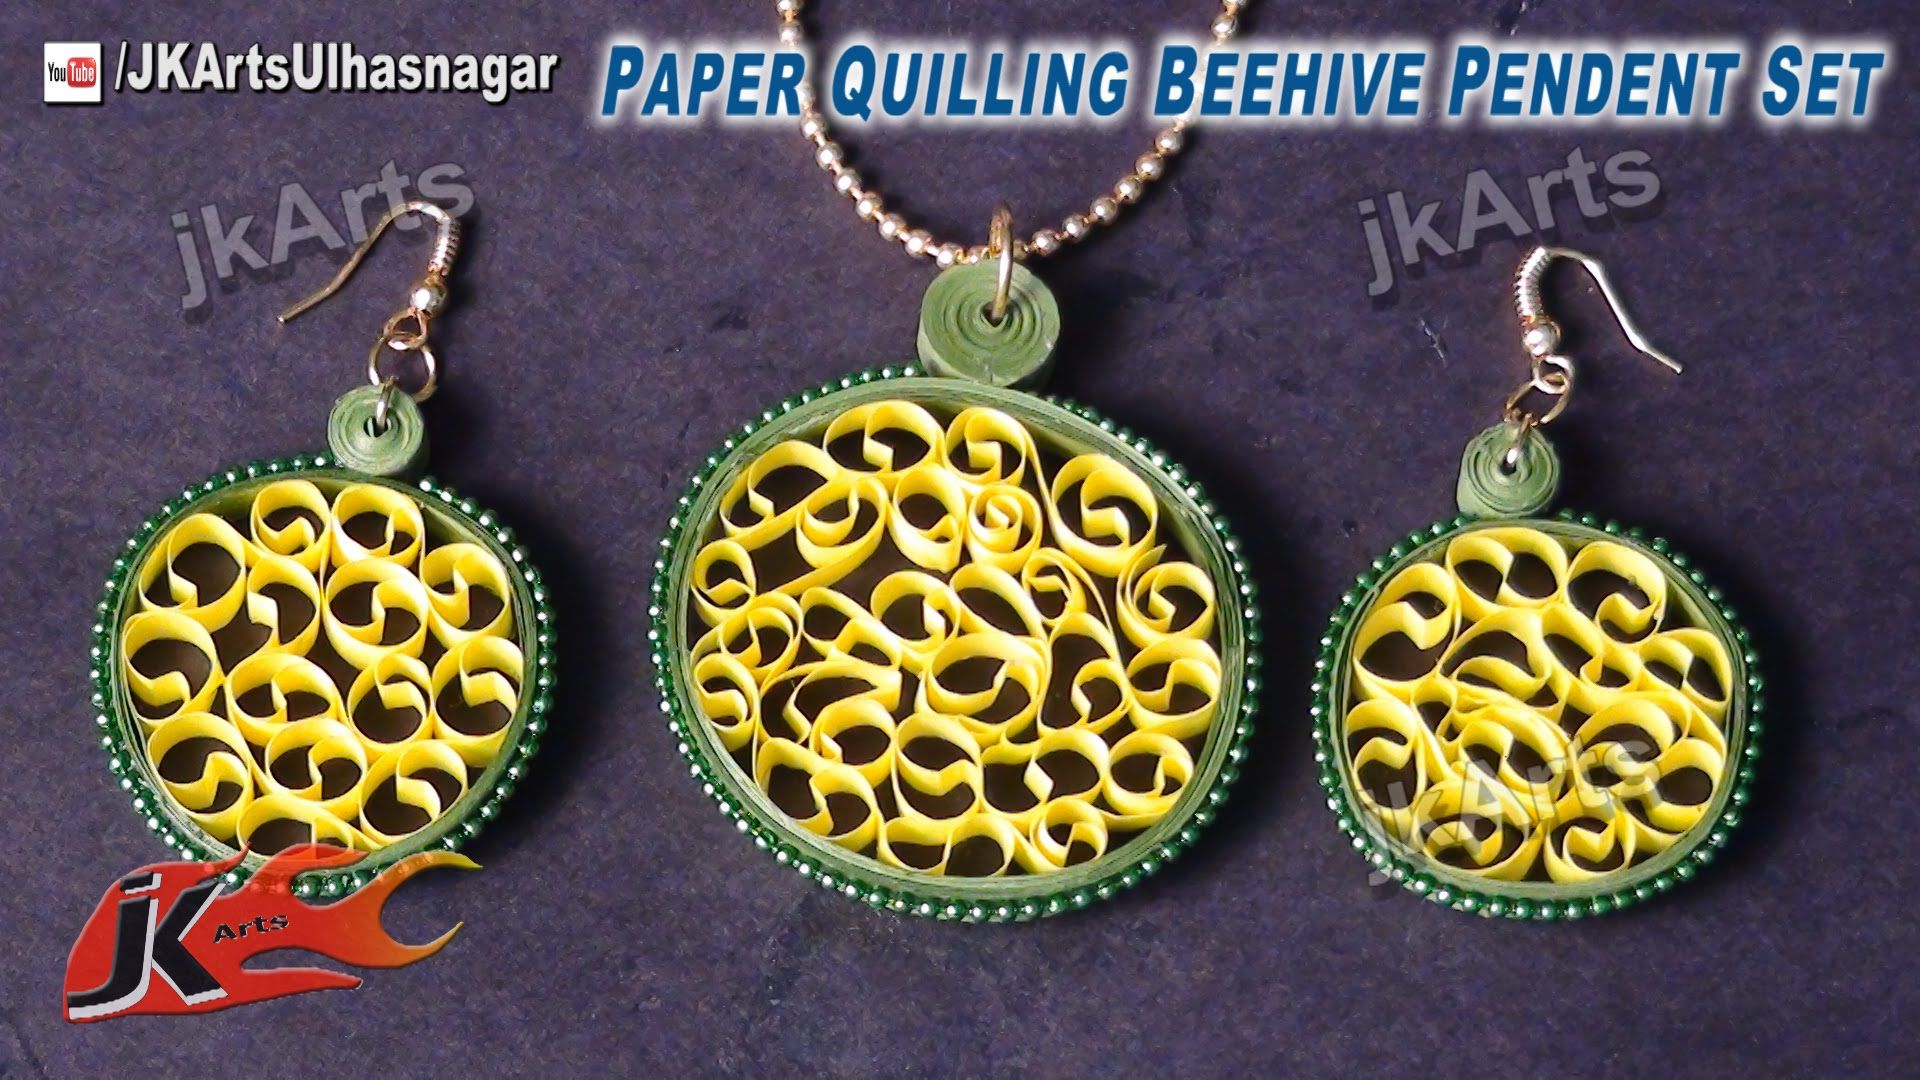 diy beehive paper quilling jewelry earring pendent set | how to